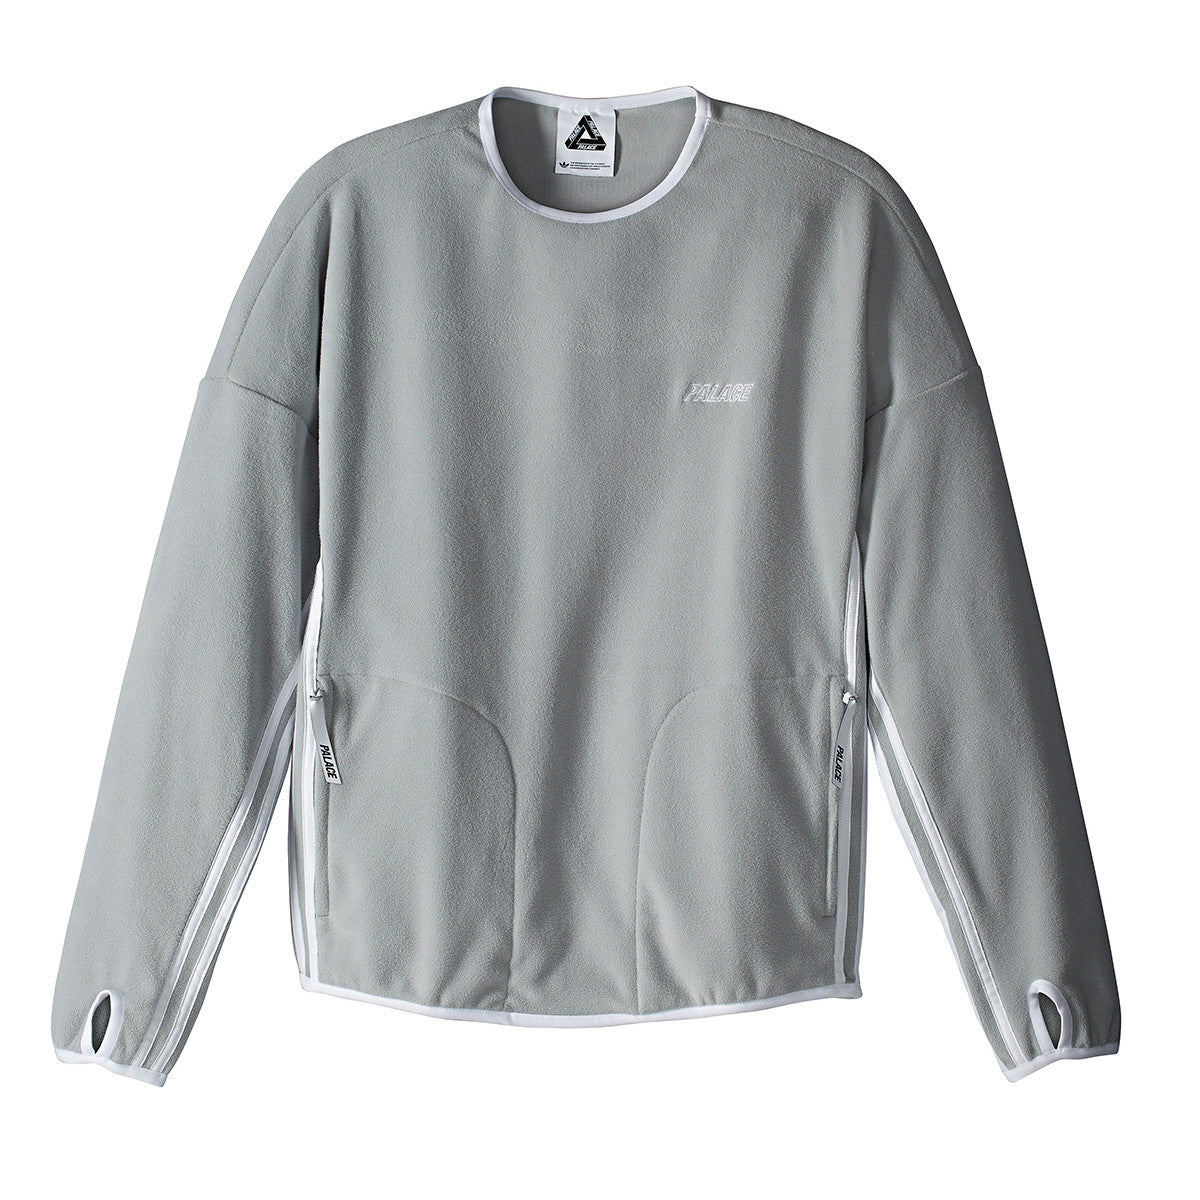 Adidas x Palace Fleece Crew Neck Sweatshirt